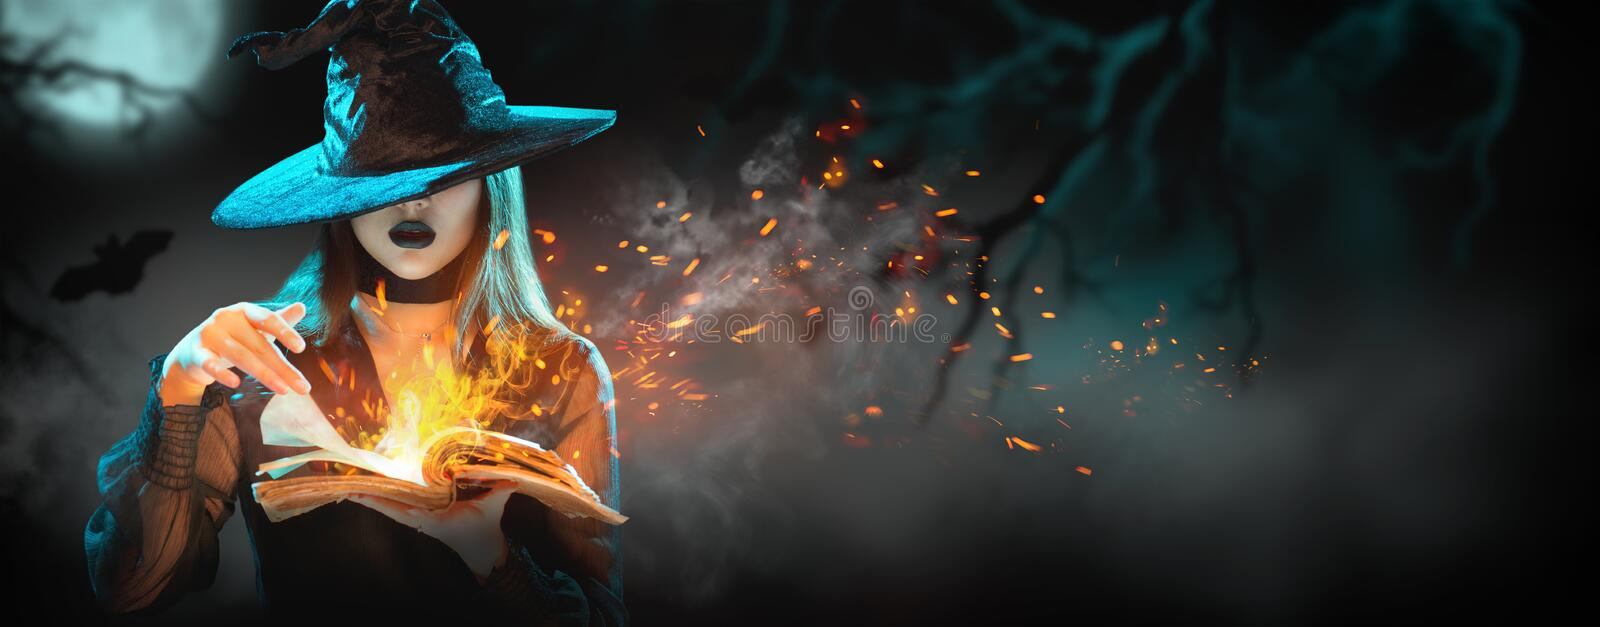 Halloween Witch girl with magic Book of spells portrait. Beautiful young woman in witches hat conjuring, making witchcraft royalty free stock photography